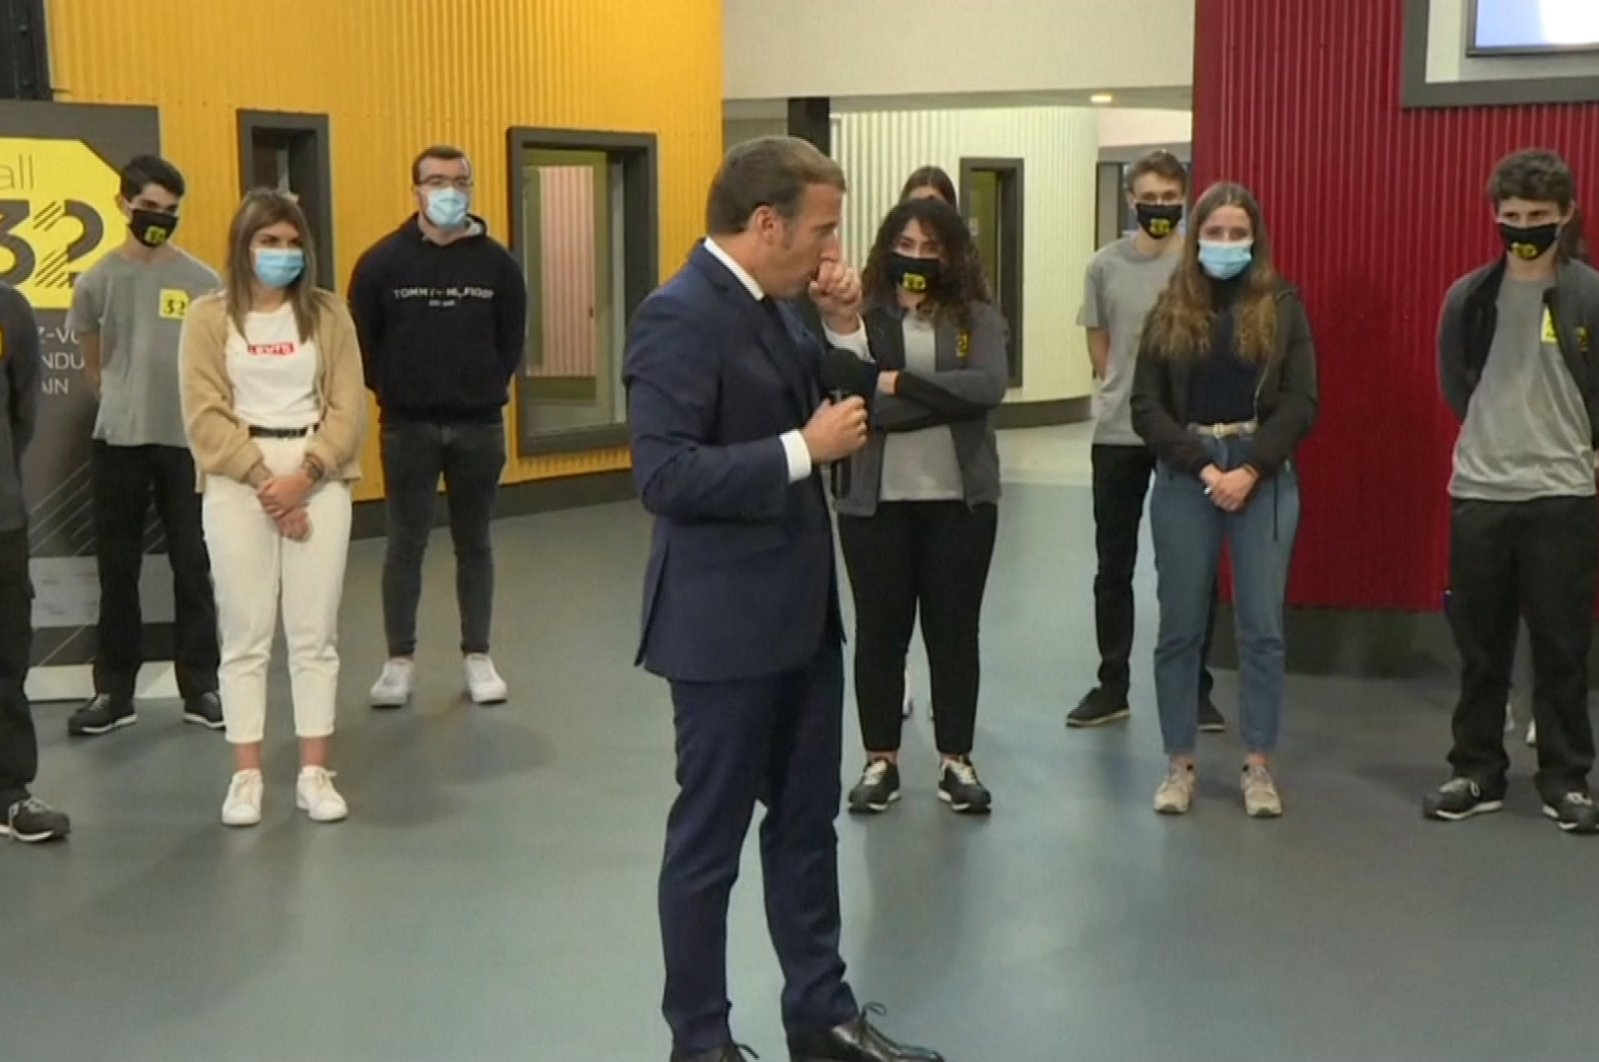 Screenshot from footage shows French President Emmanuel Macron coughing on his hand during his speech to students of a vocational school in Clermont-Ferrand, France, Sept. 8, 2020.